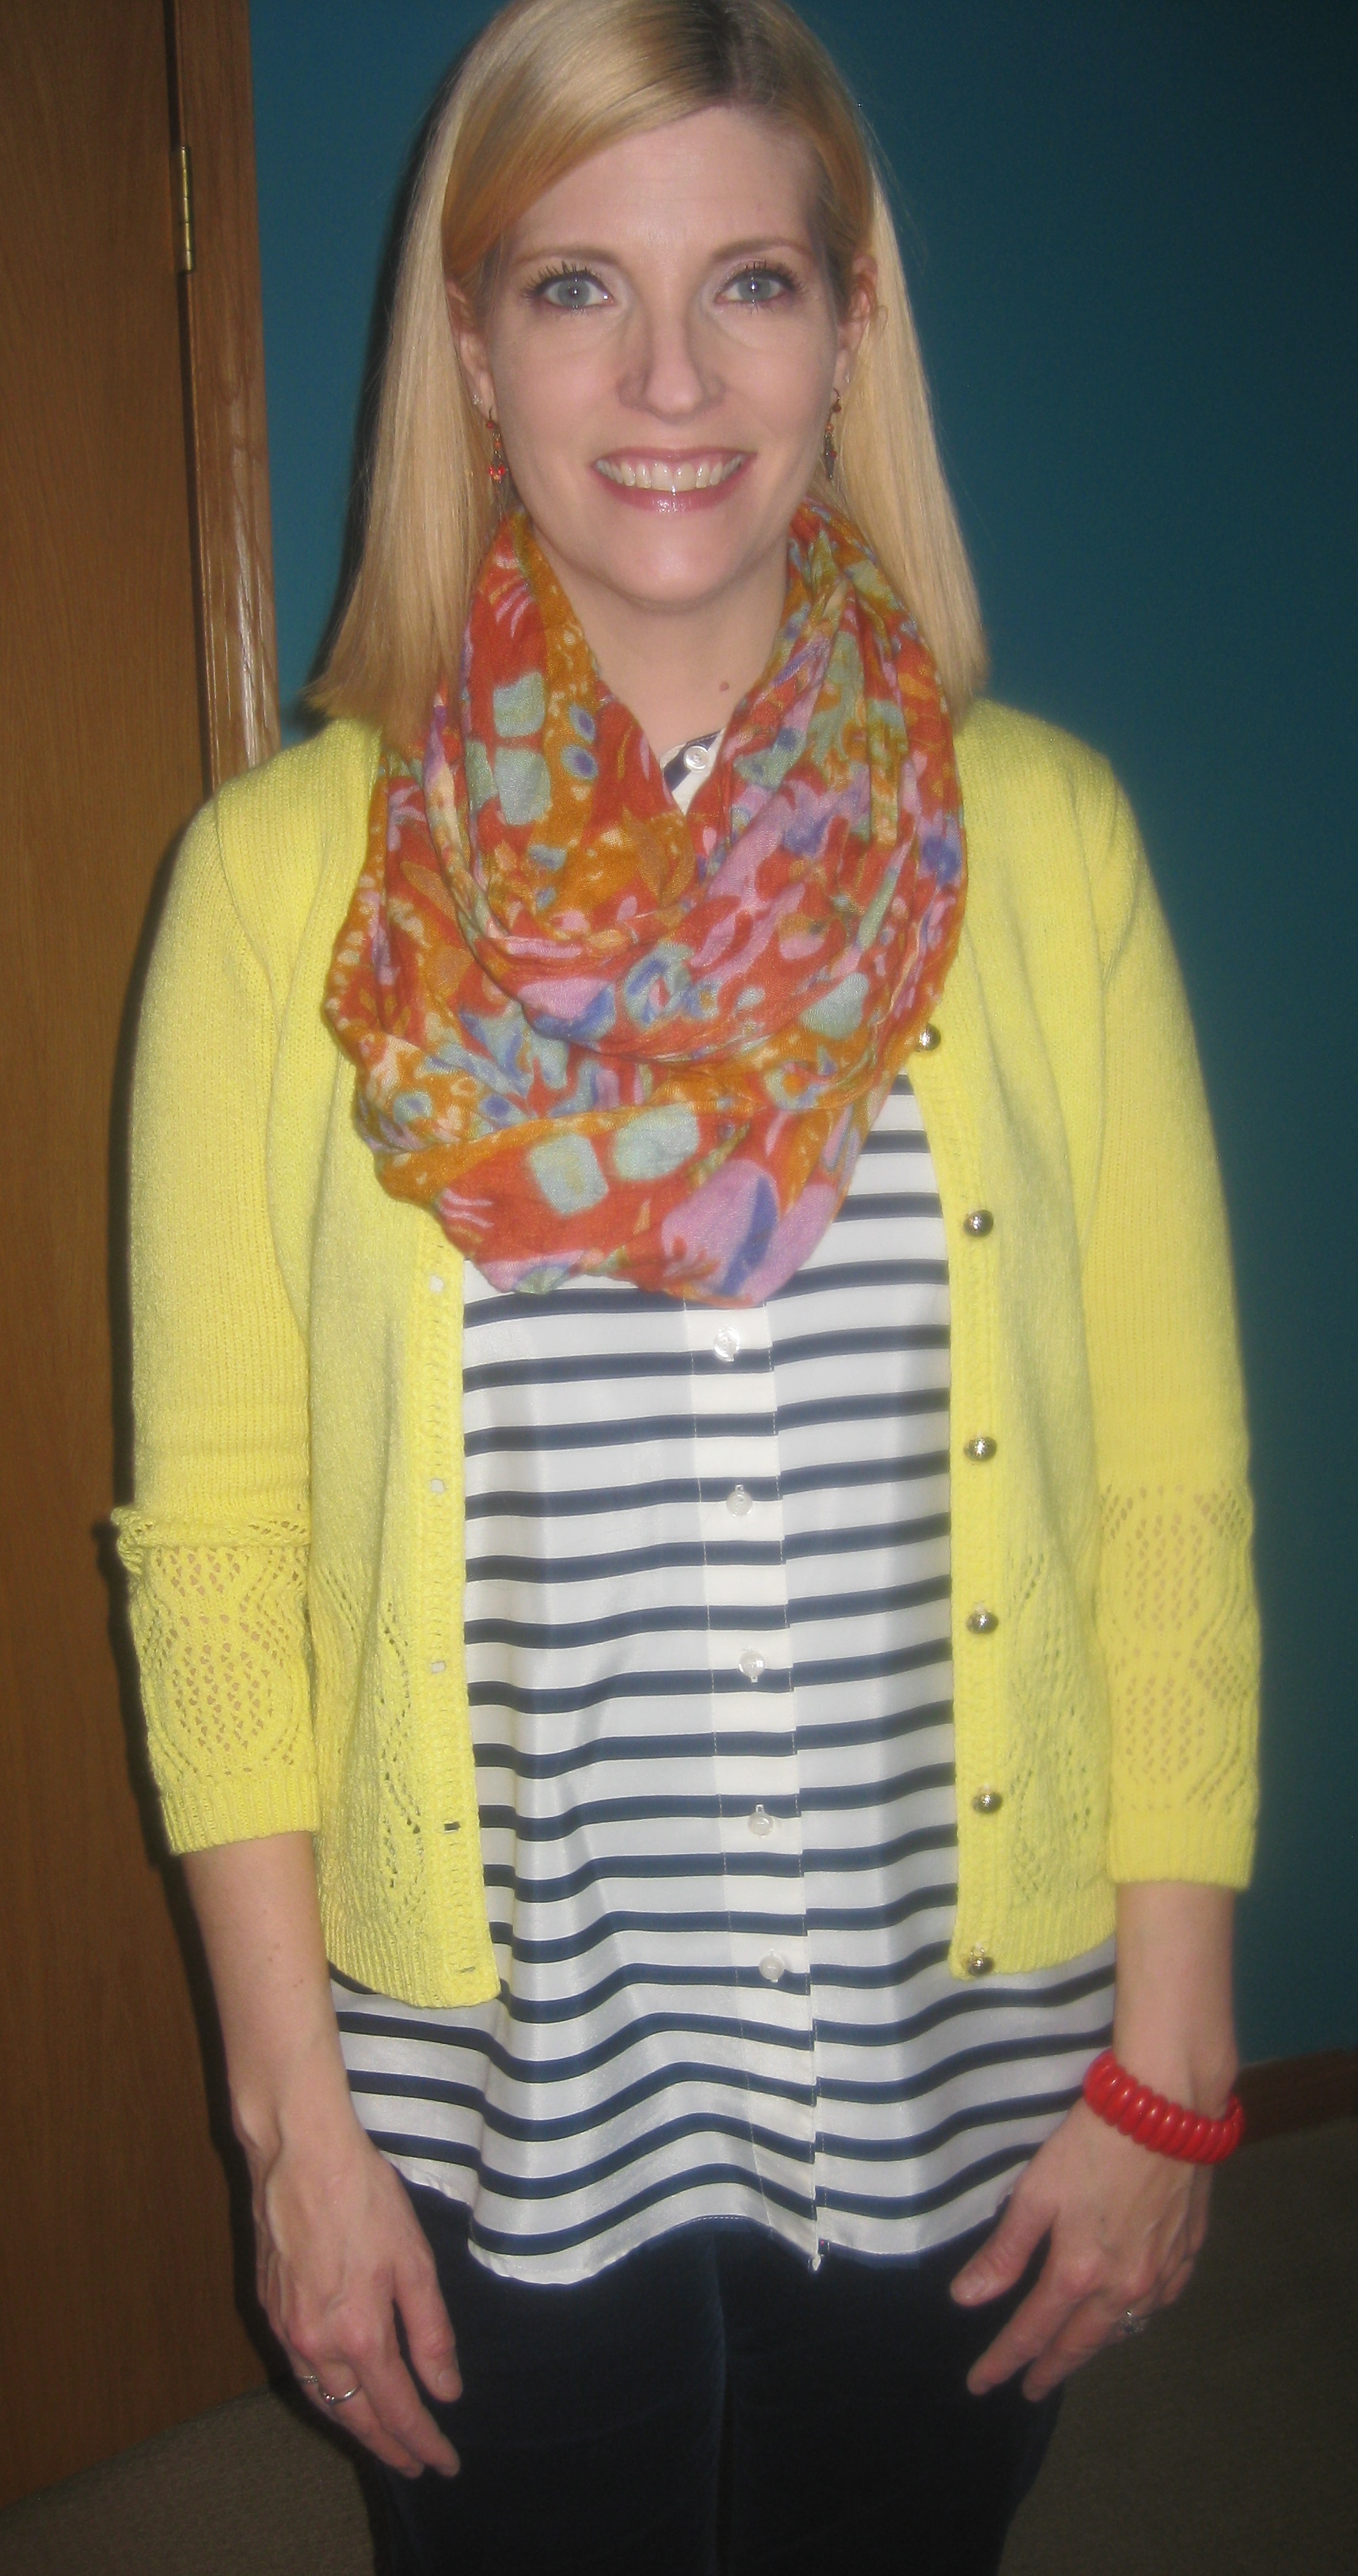 Lemony wondeful vintage cardi from the Salvation Army gift shop for $6.75!